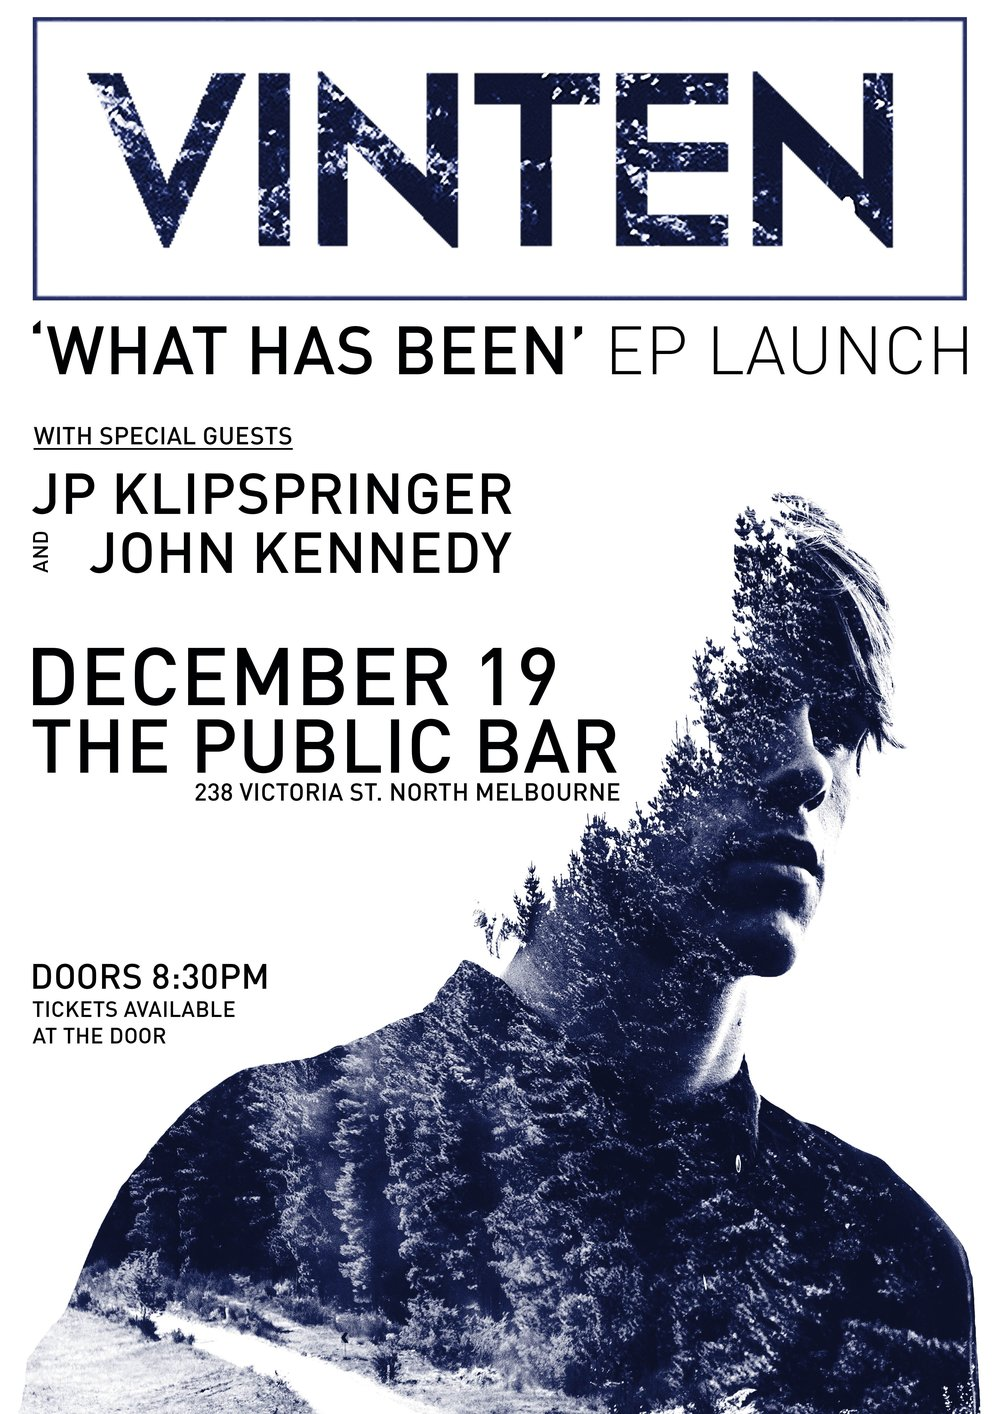 EP LAUNCH POSTER FOR VINTEN